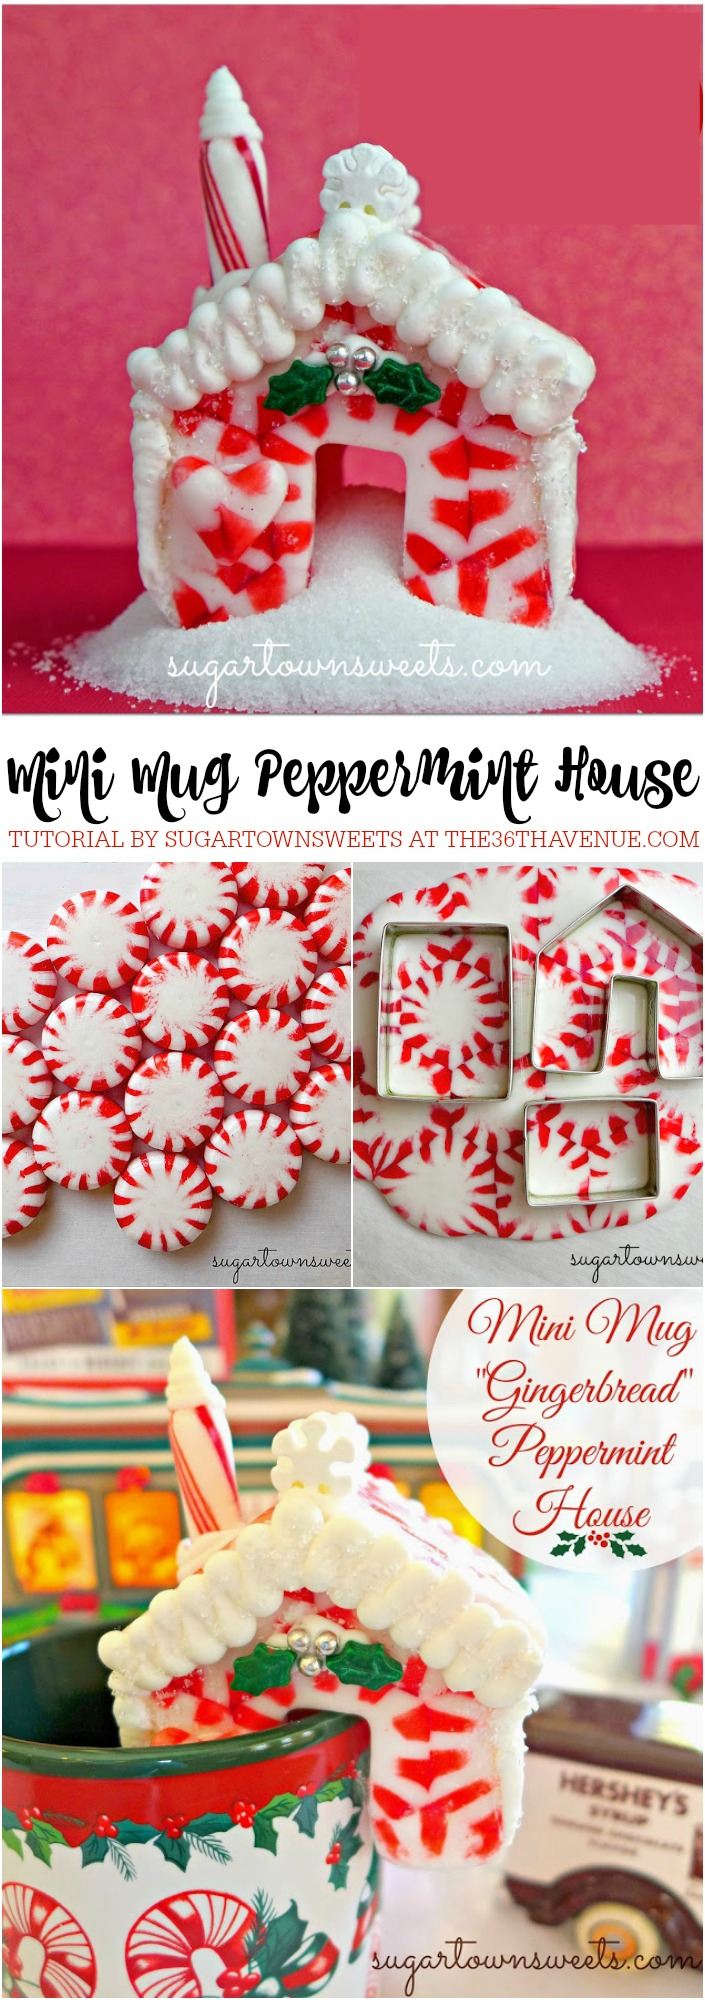 Christmas Recipes - How to make a Mini Mug Peppermint House.